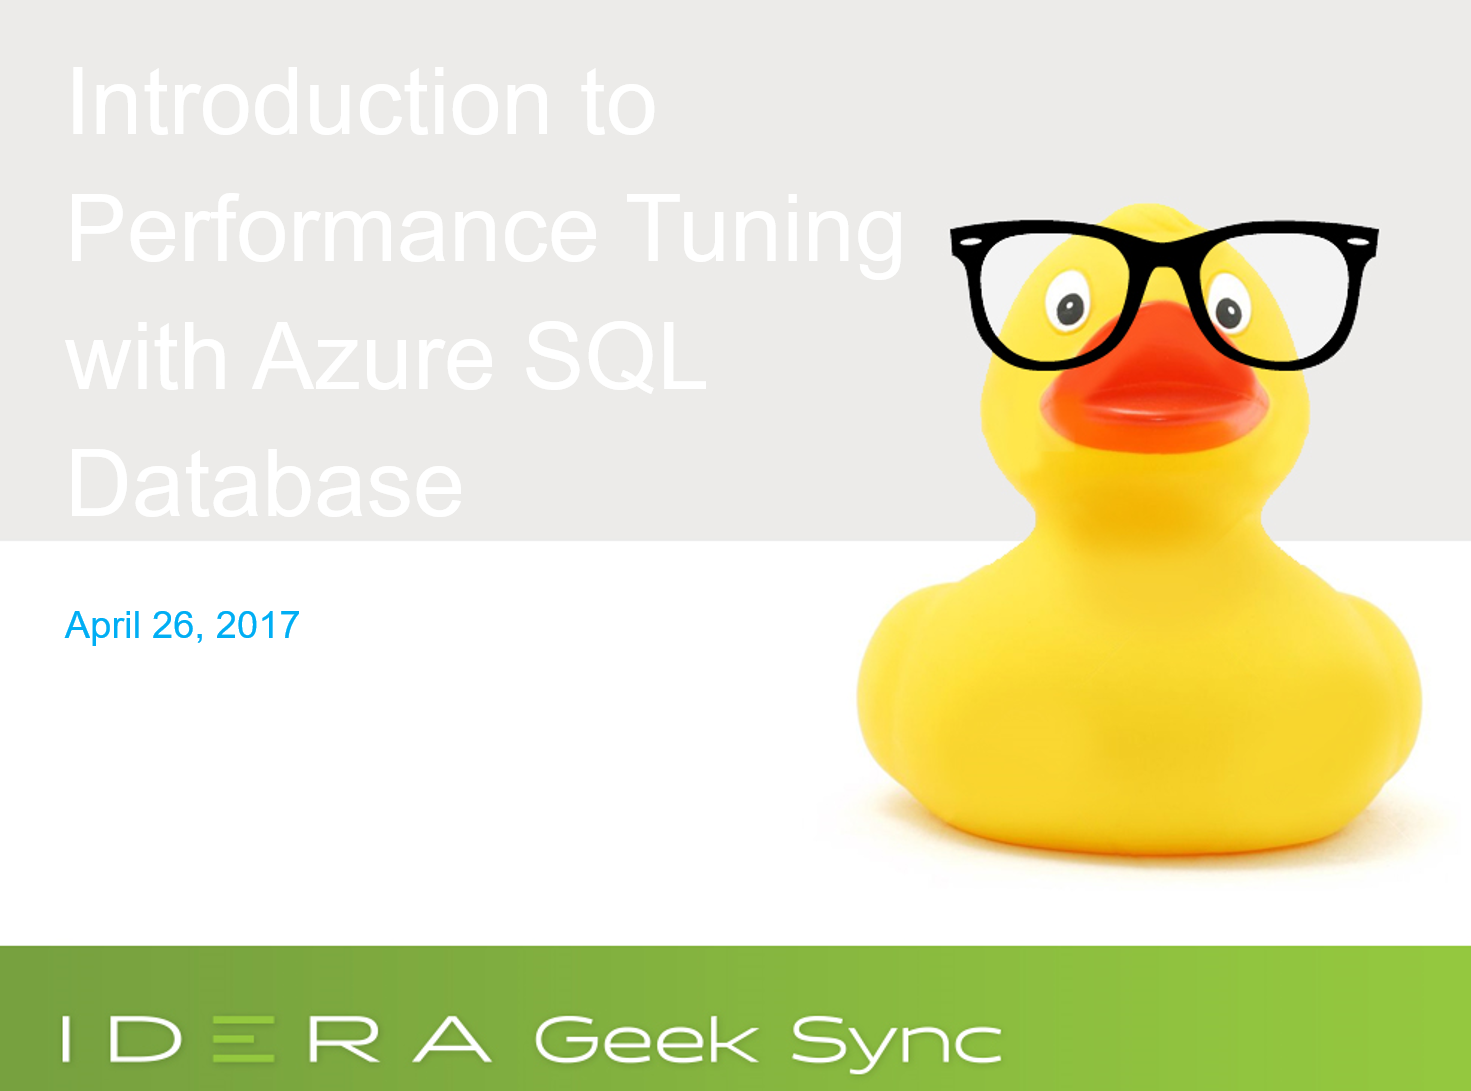 Introduction to Performance Tuning in Azure SQL Databases